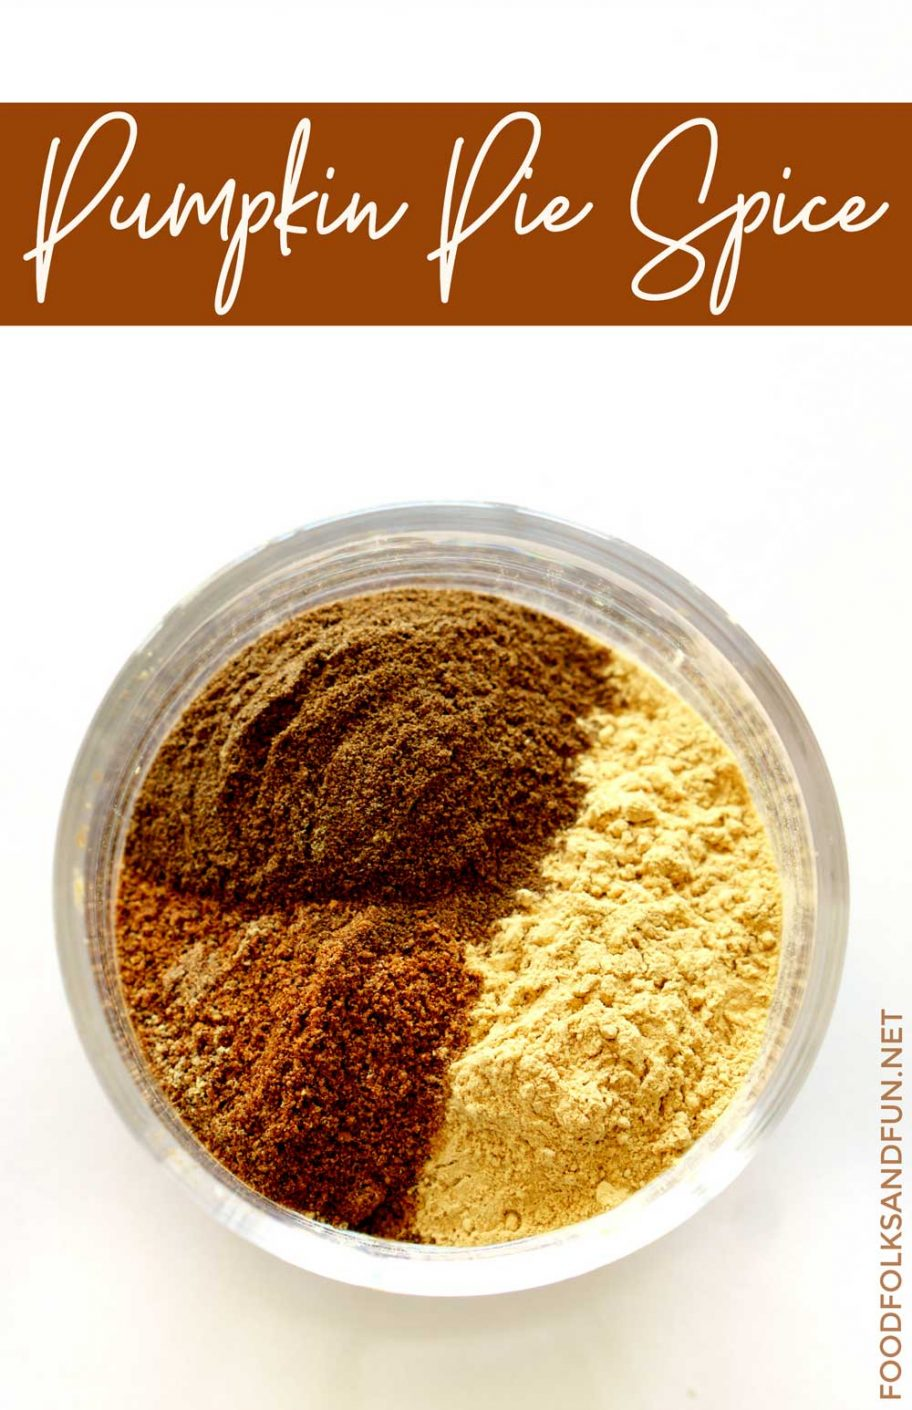 Homemade Pumpkin Pie Spice blend with text overlay for Pinterest.